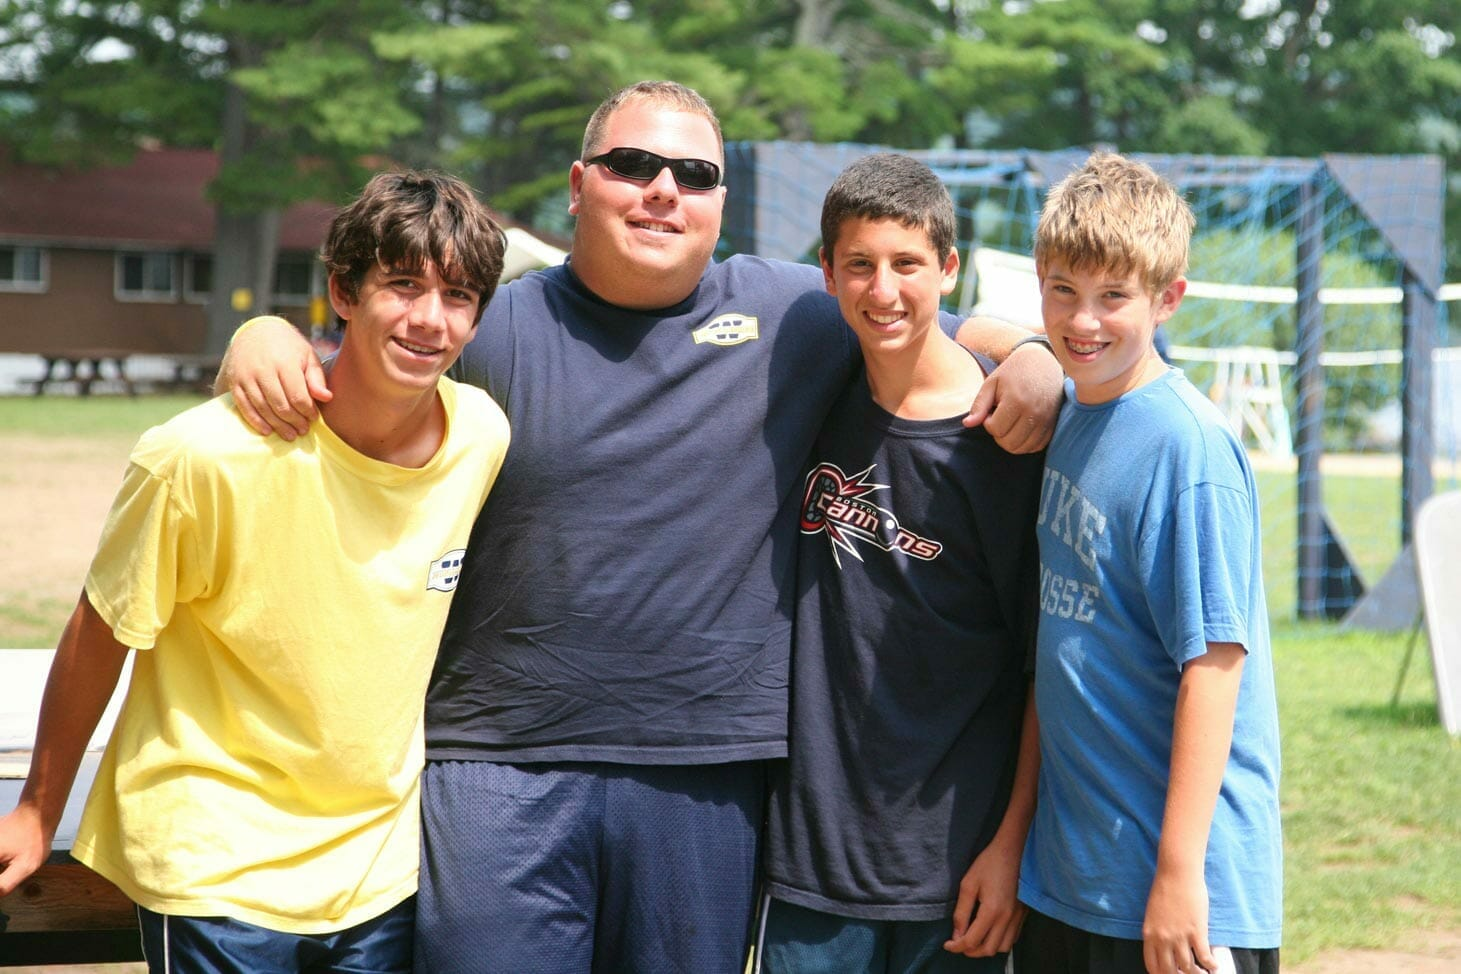 Boys embrace their counselor at American summer camp